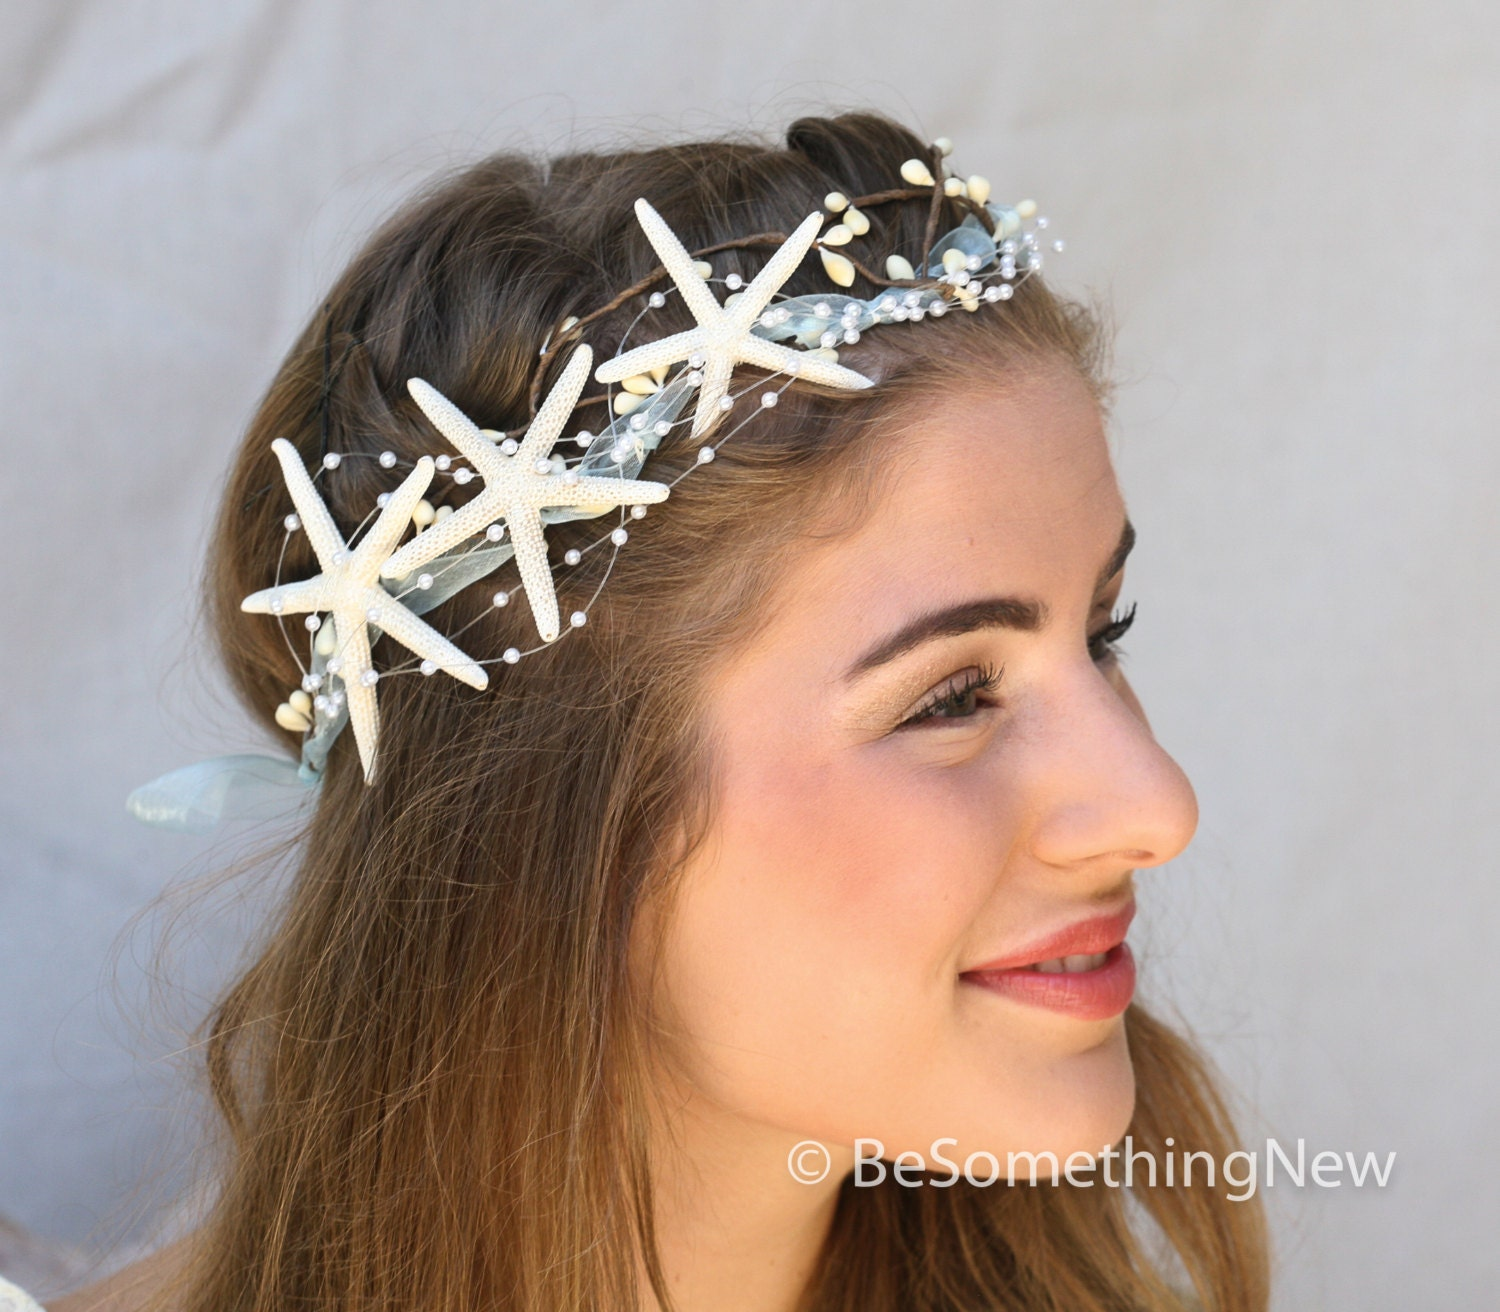 Hair accessories singapore - Like This Item